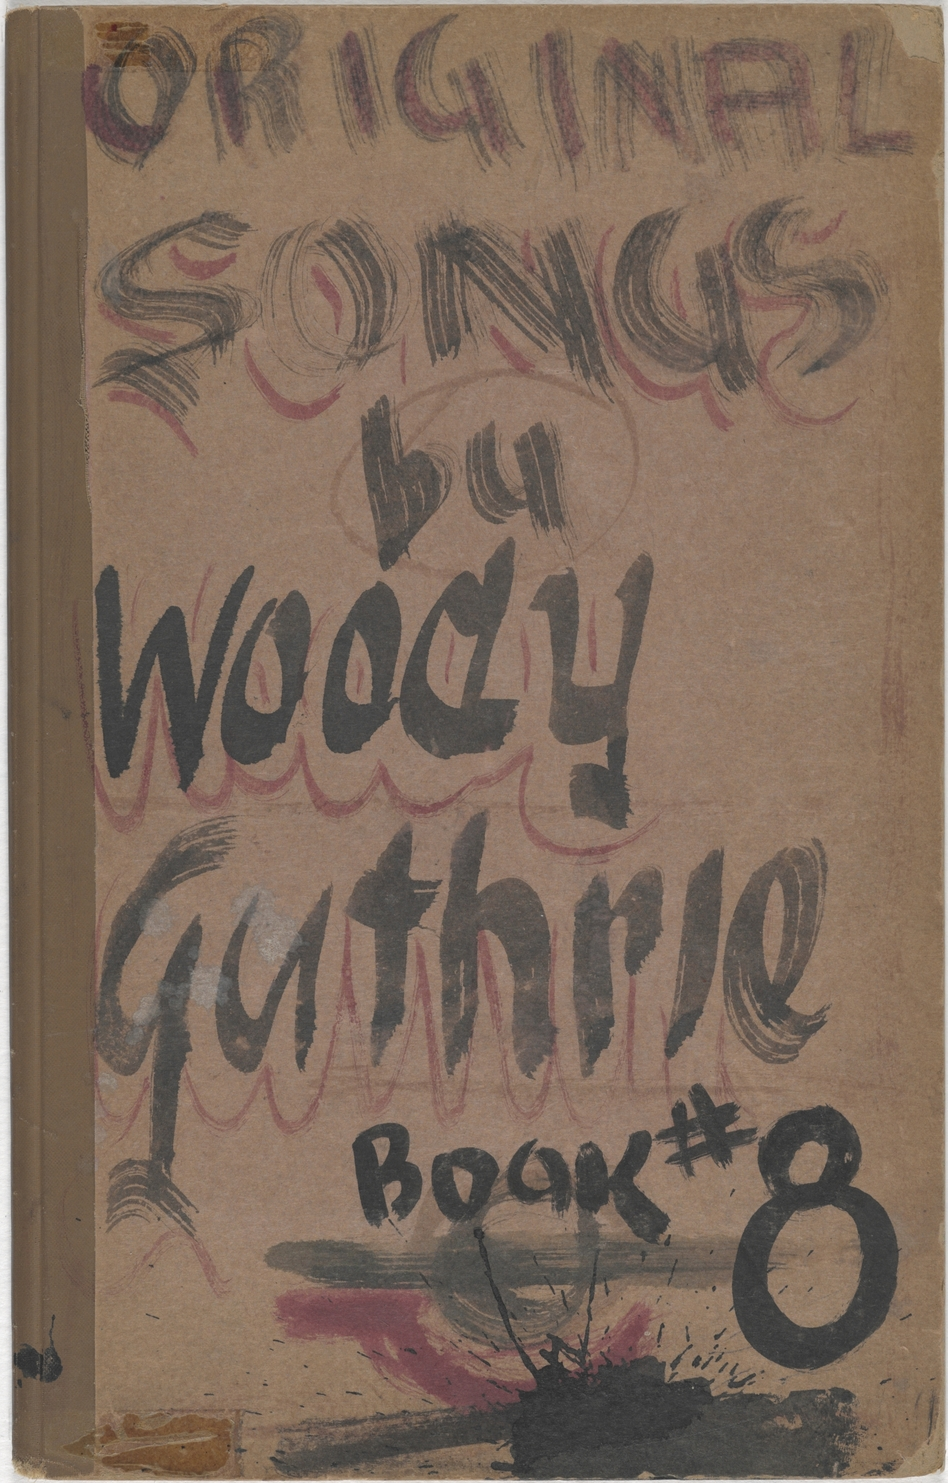 One of Woody Guthrie's notebooks from Coney Island, N.Y., 1945-1949. (Courtesy of the Woody Guthrie Archives)